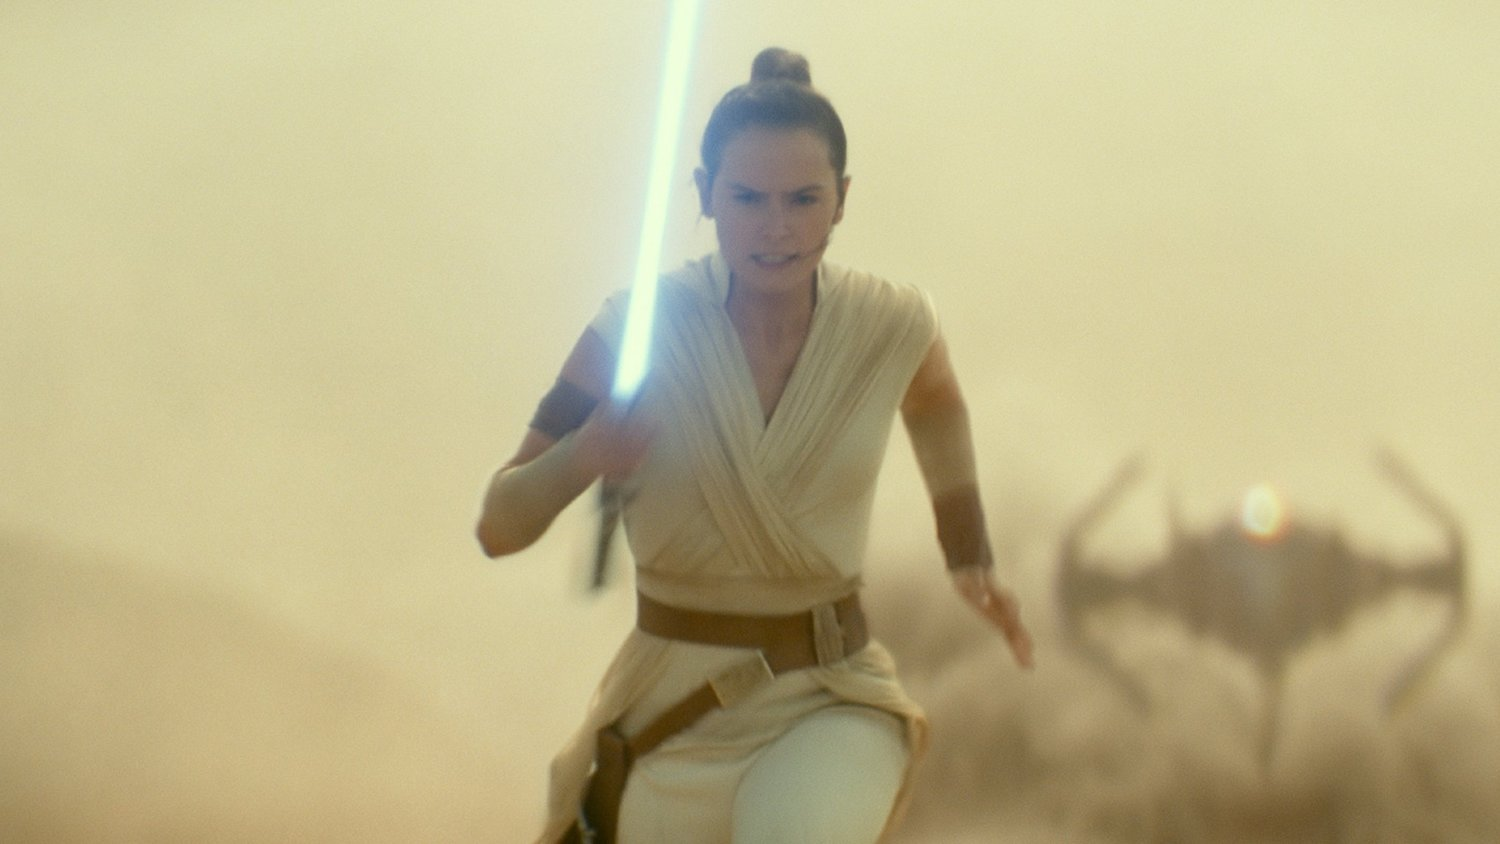 kathleen-kennedy-teases-star-wars-the-rise-of-skywalker-may-not-be-the-last-we-see-of-certain-characters-social.jpg